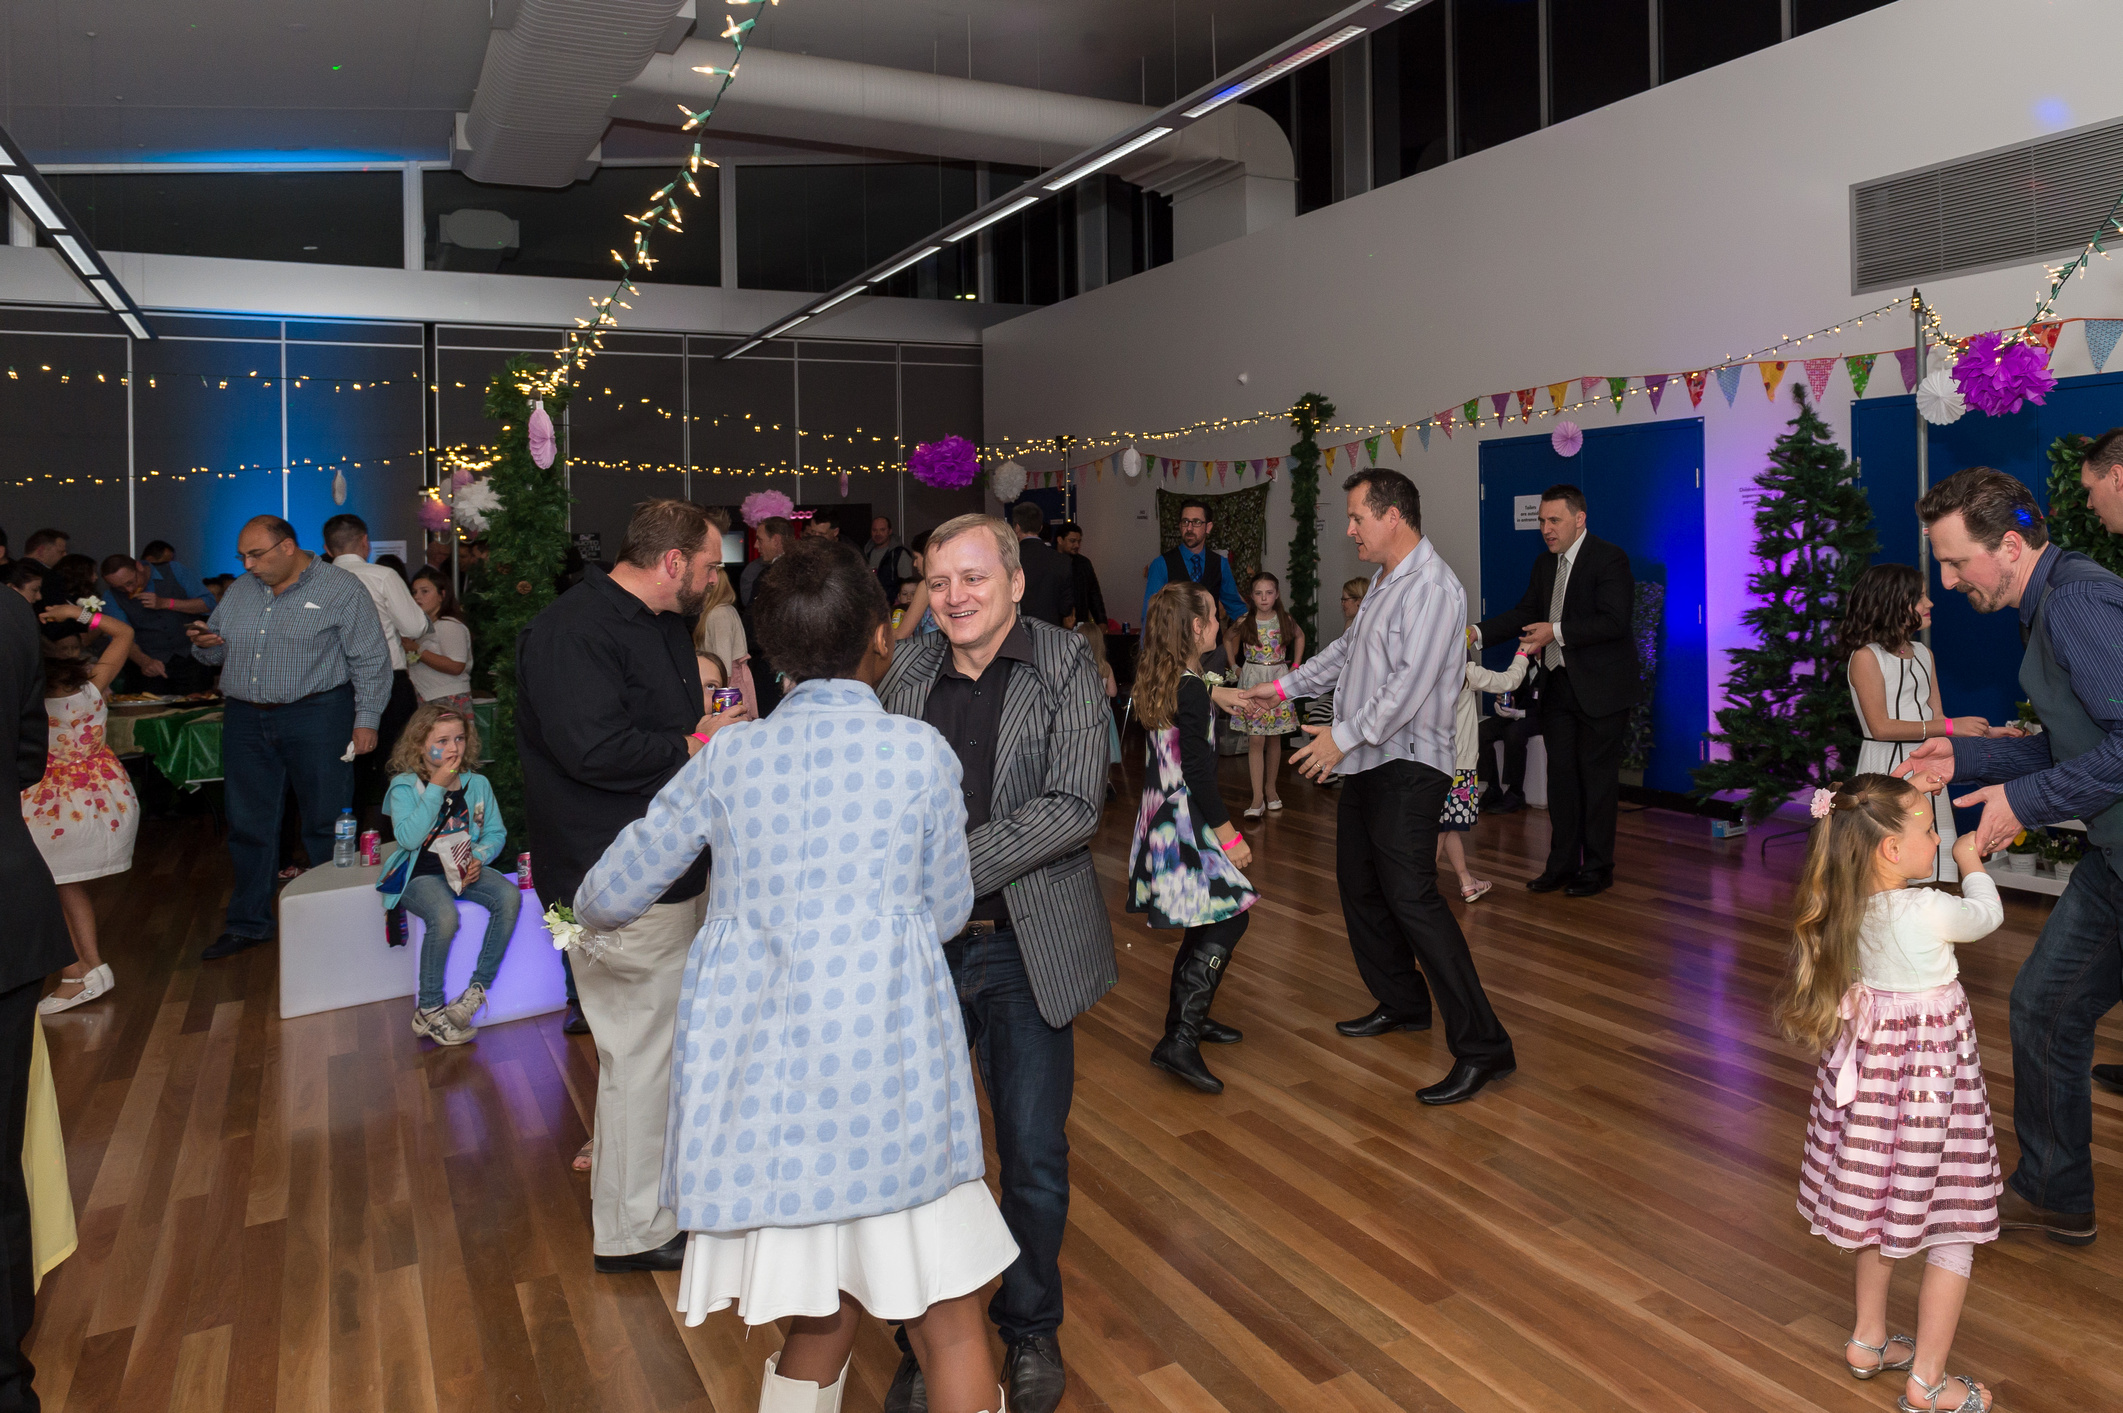 COM-Father-Daughter-Dance-2015-88-(ZF-8733-44894-1-002)